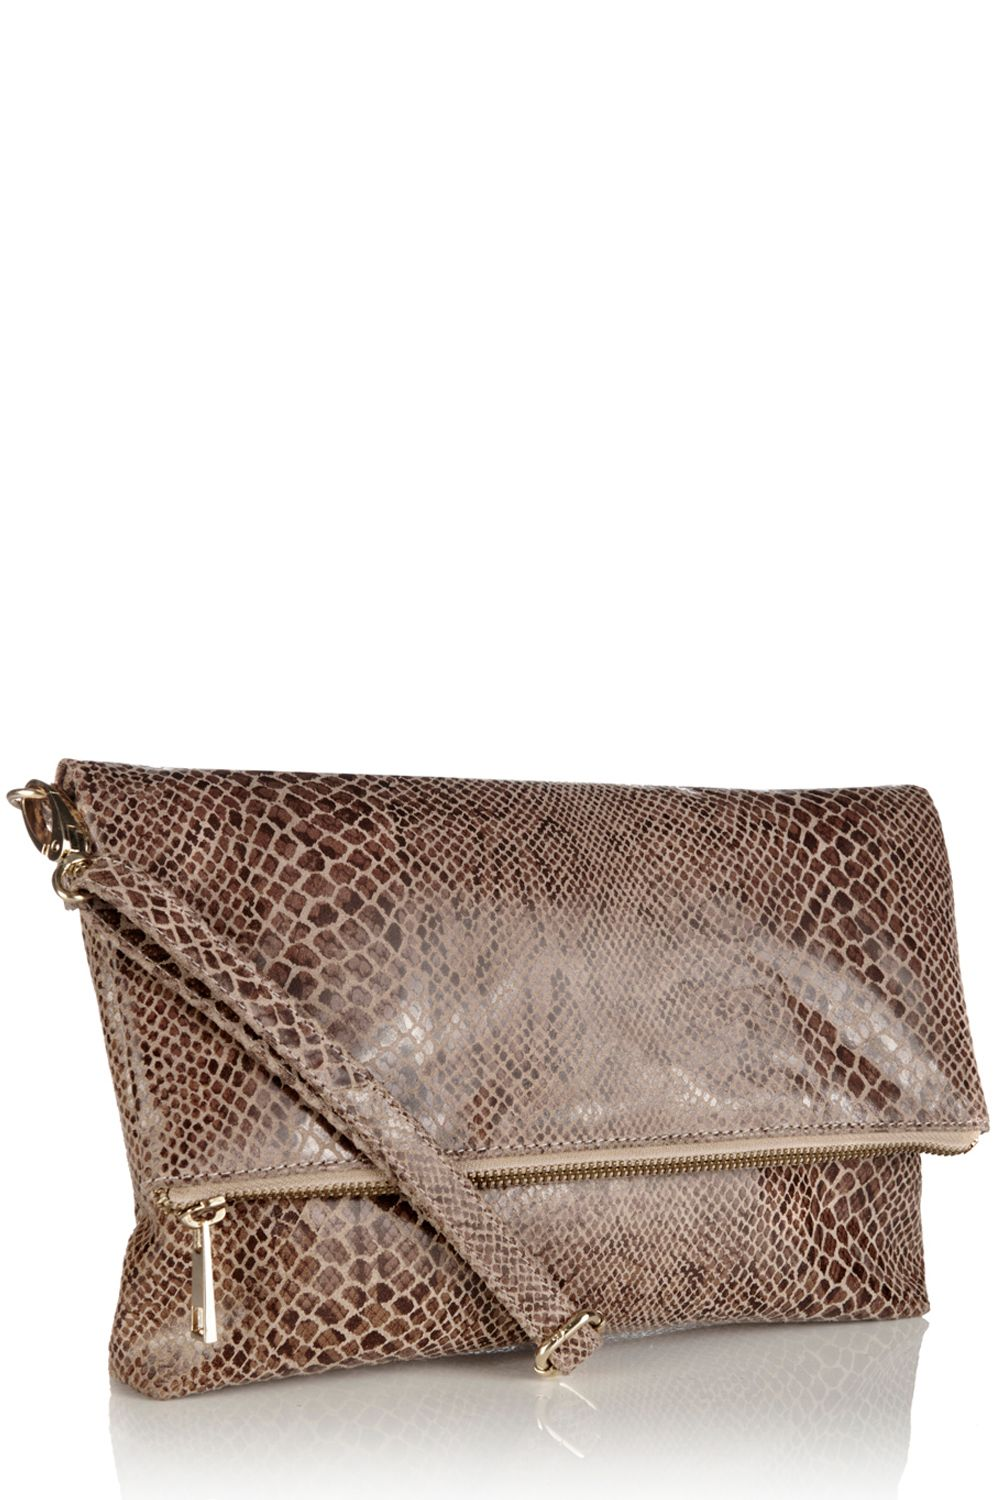 Celeste leather fold over clutch bag